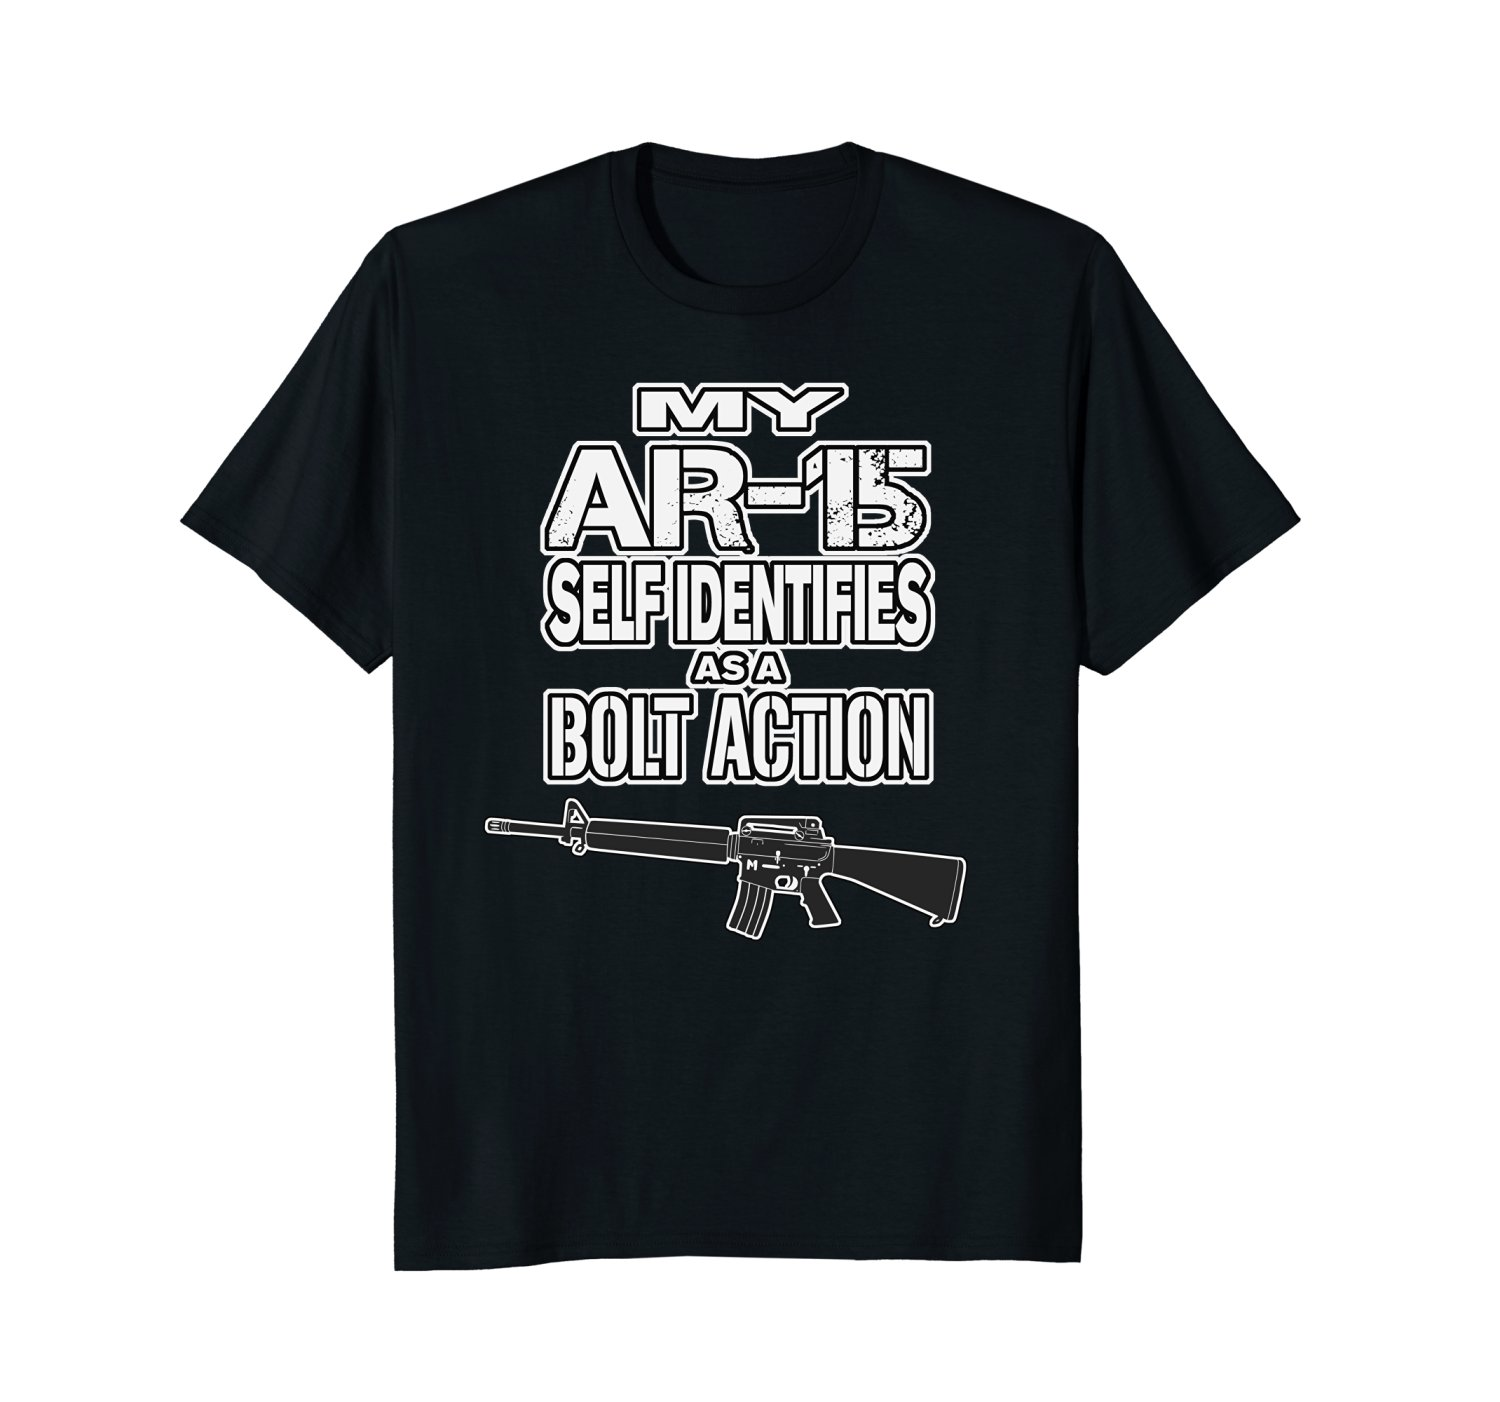 2019 New Brand Cheap Sale 100 % Cotton Pro Gun Shirts My AR-15 Self Identifies As A Bolt Action Graphic Shirts image